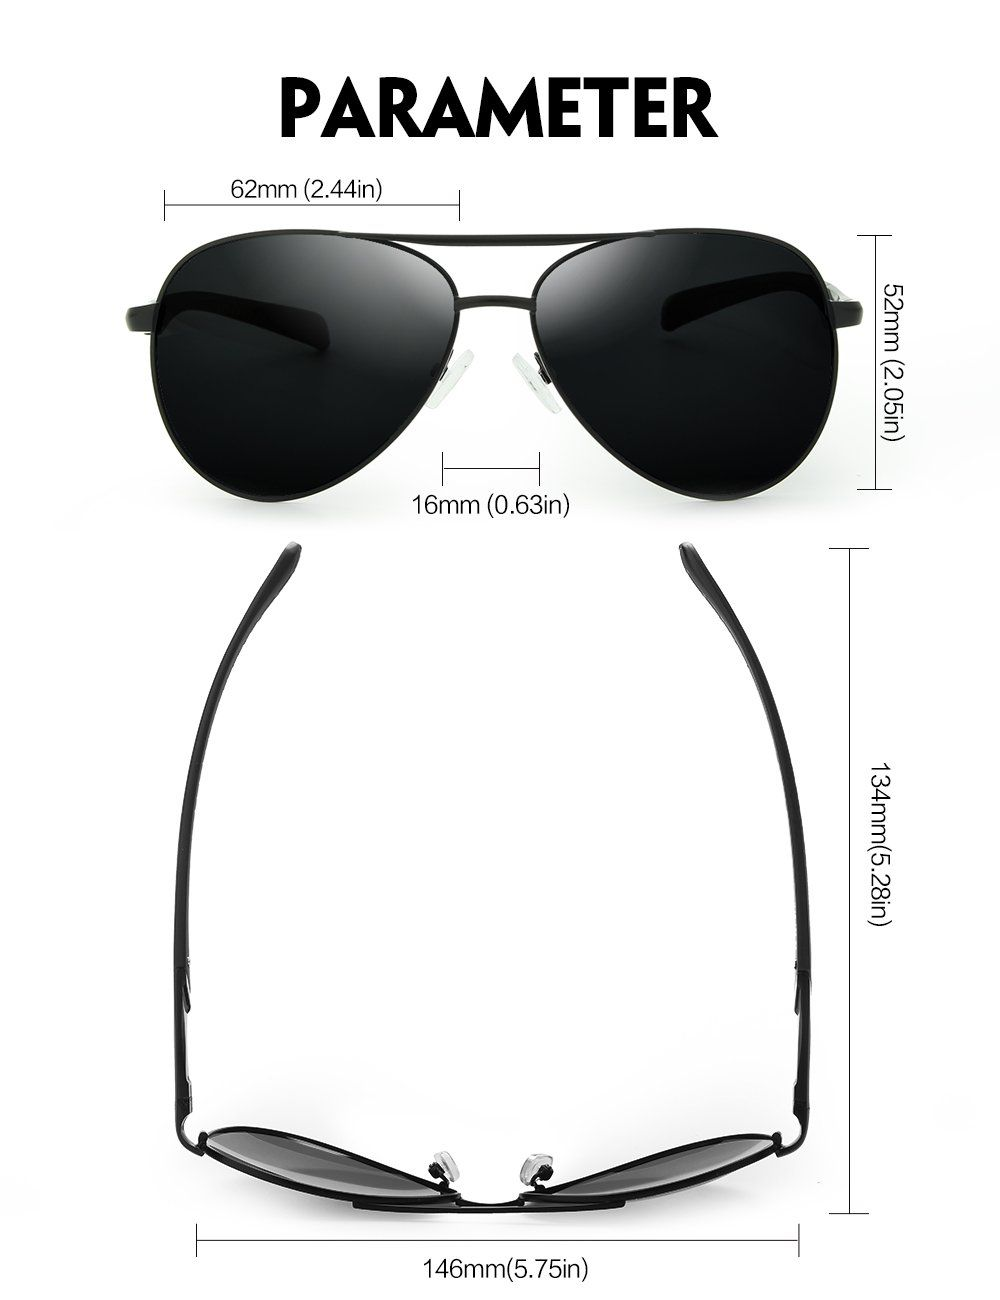 06346ee25b WELUK Aviator Sunglasses for Men Polarized Military Retro Mirrored Large  Frame Black and Grey 62